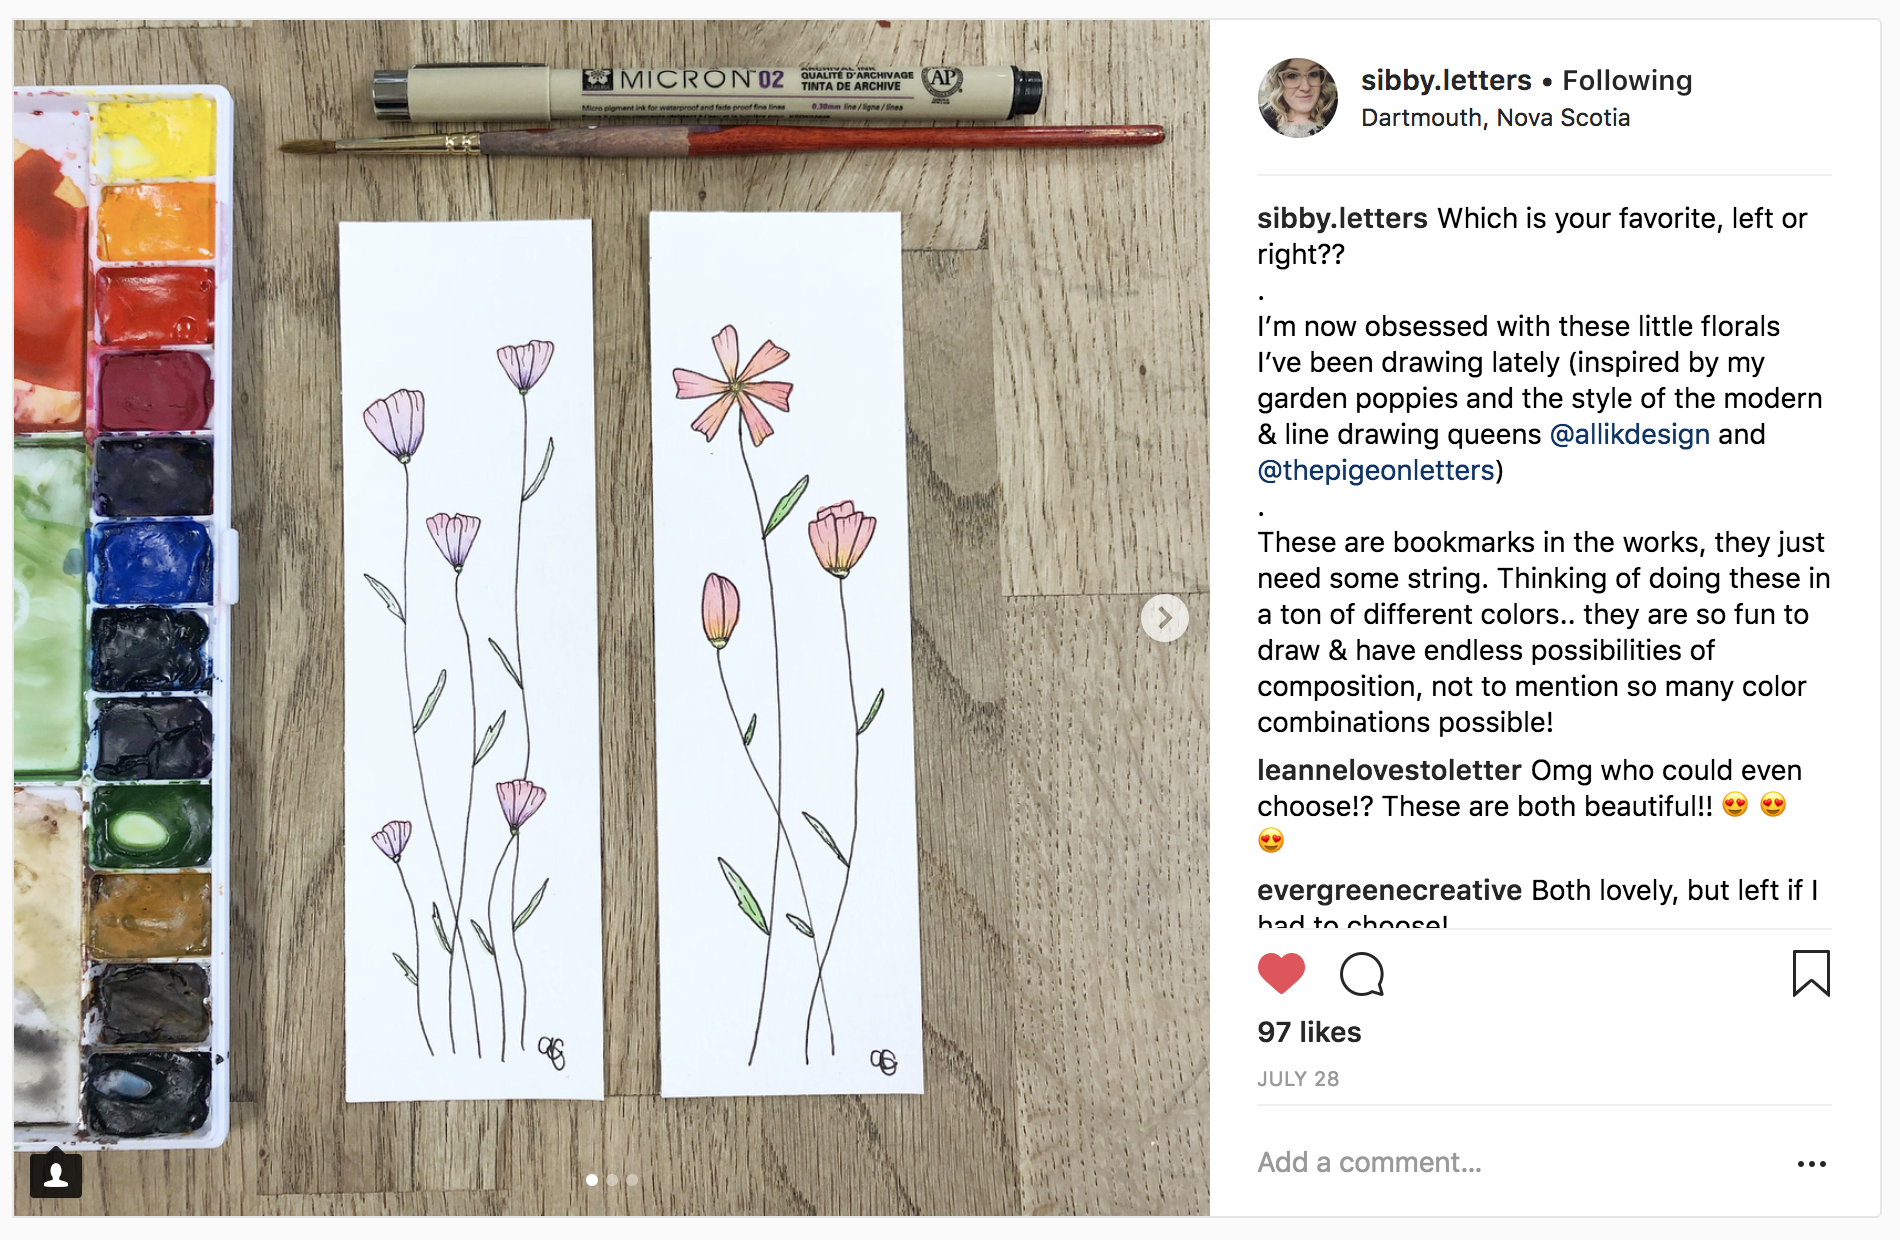 10 Watercolor Artist Inspiration Accounts to Follow: sibby.letters